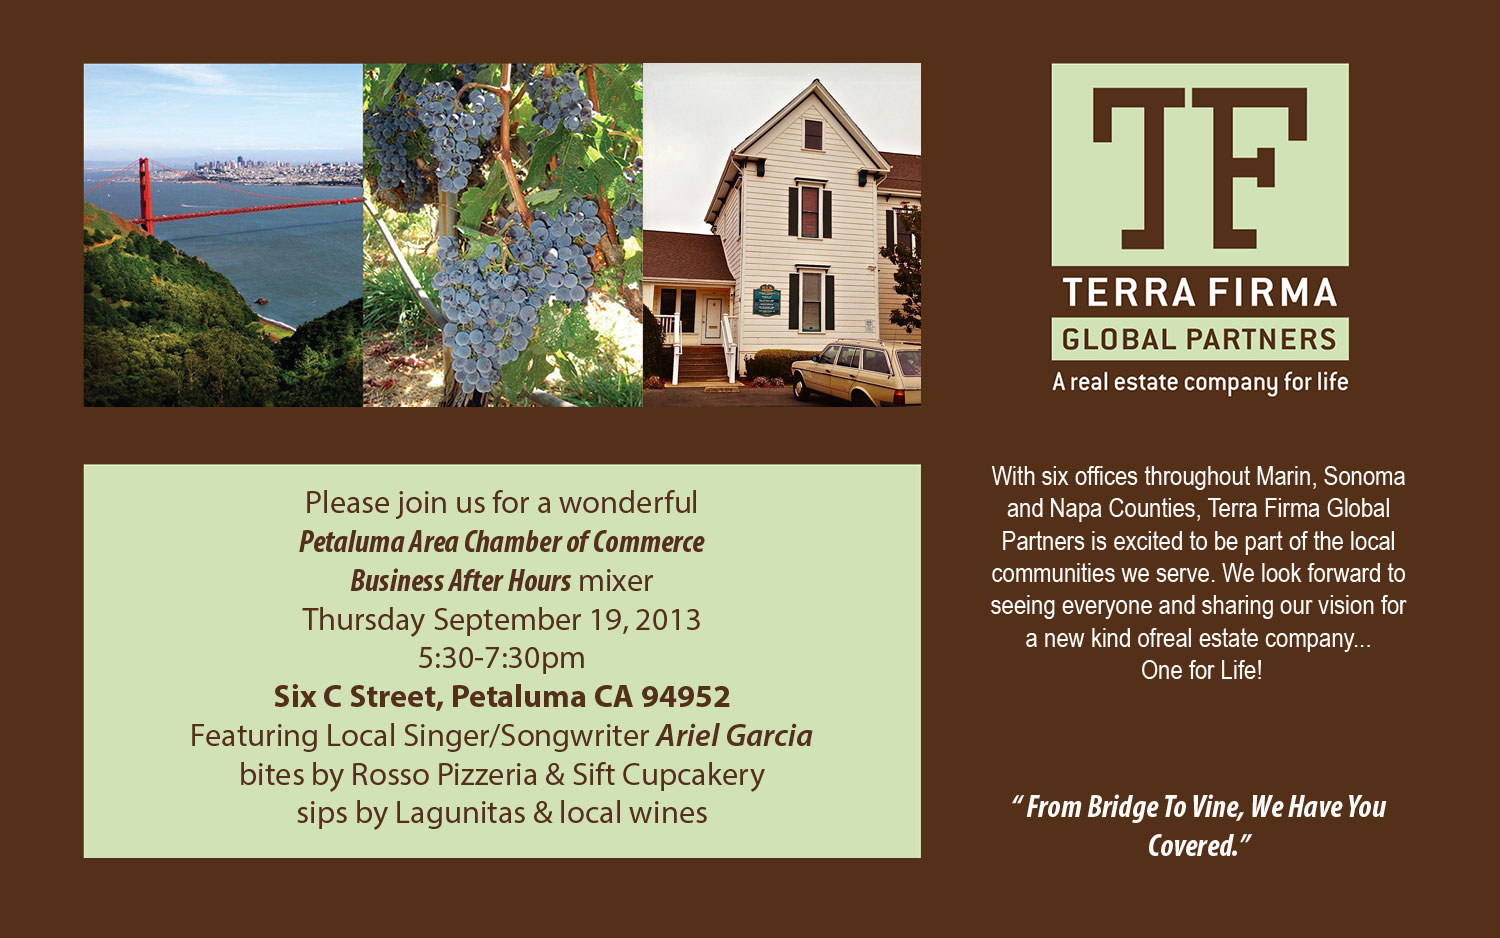 Terra Firma Global Partners Flyer